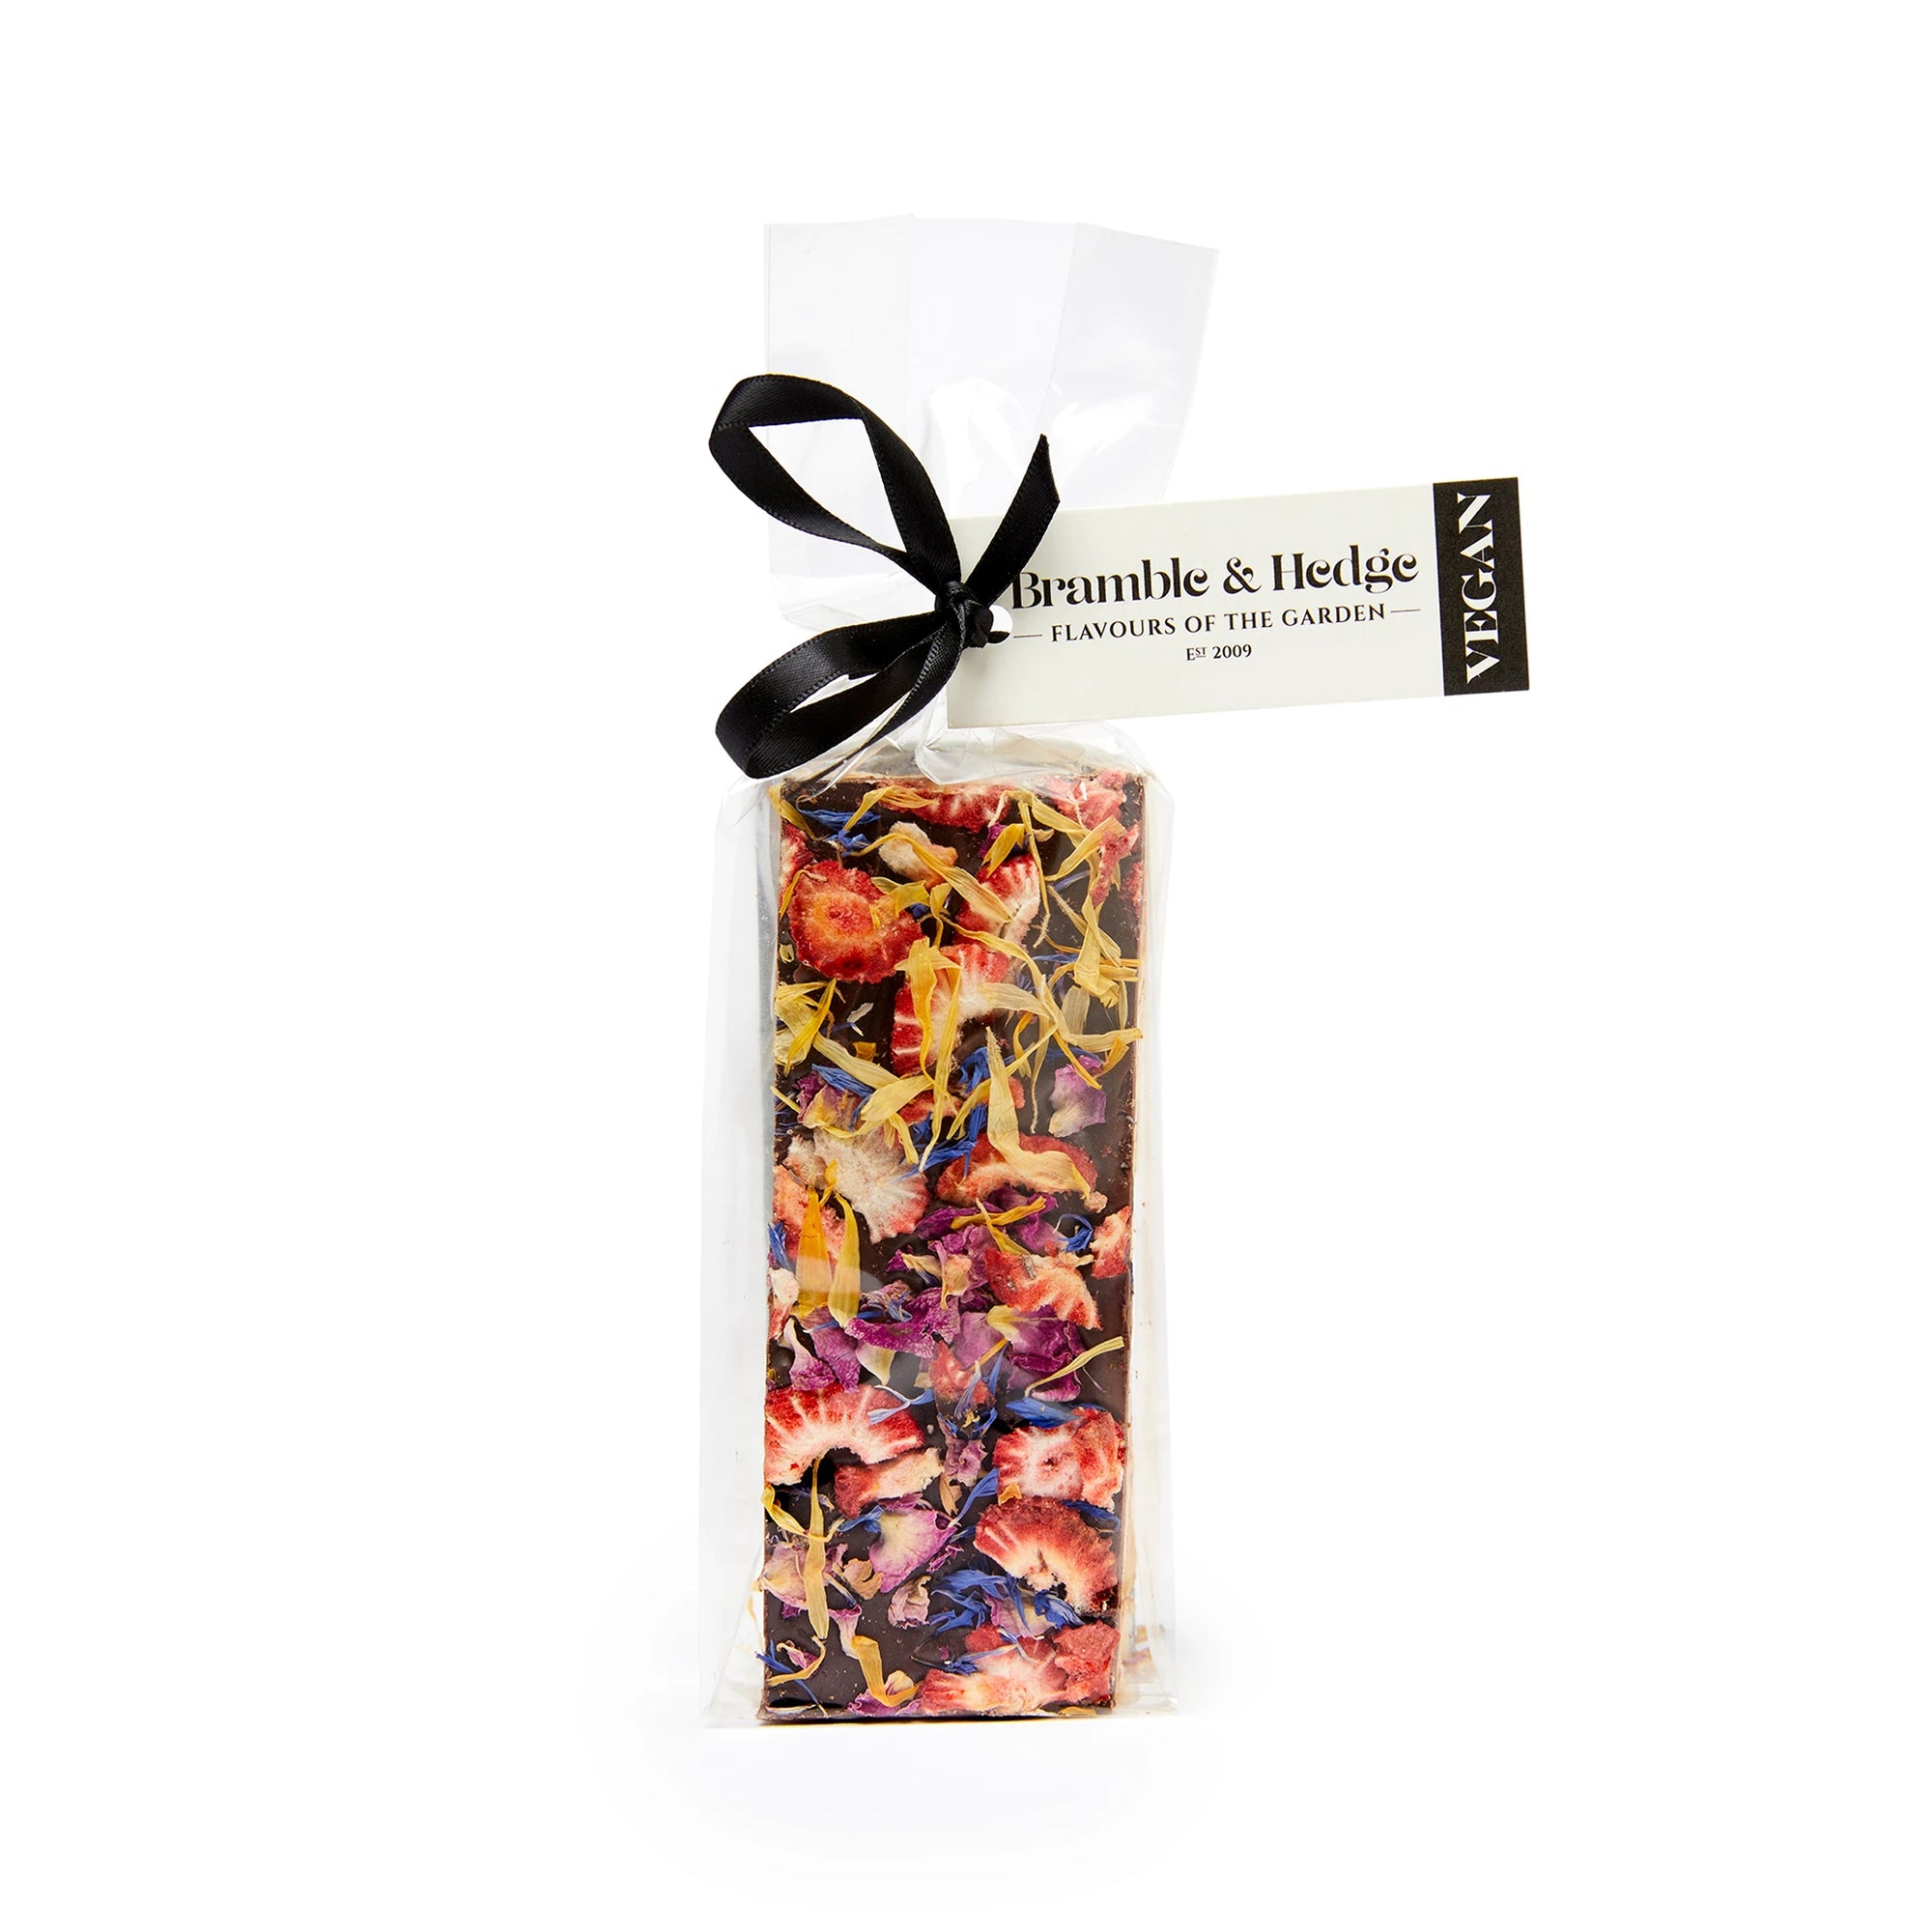 Bramble & Hedge - Vegan Nougat - Strawberry & Elderflower 150g